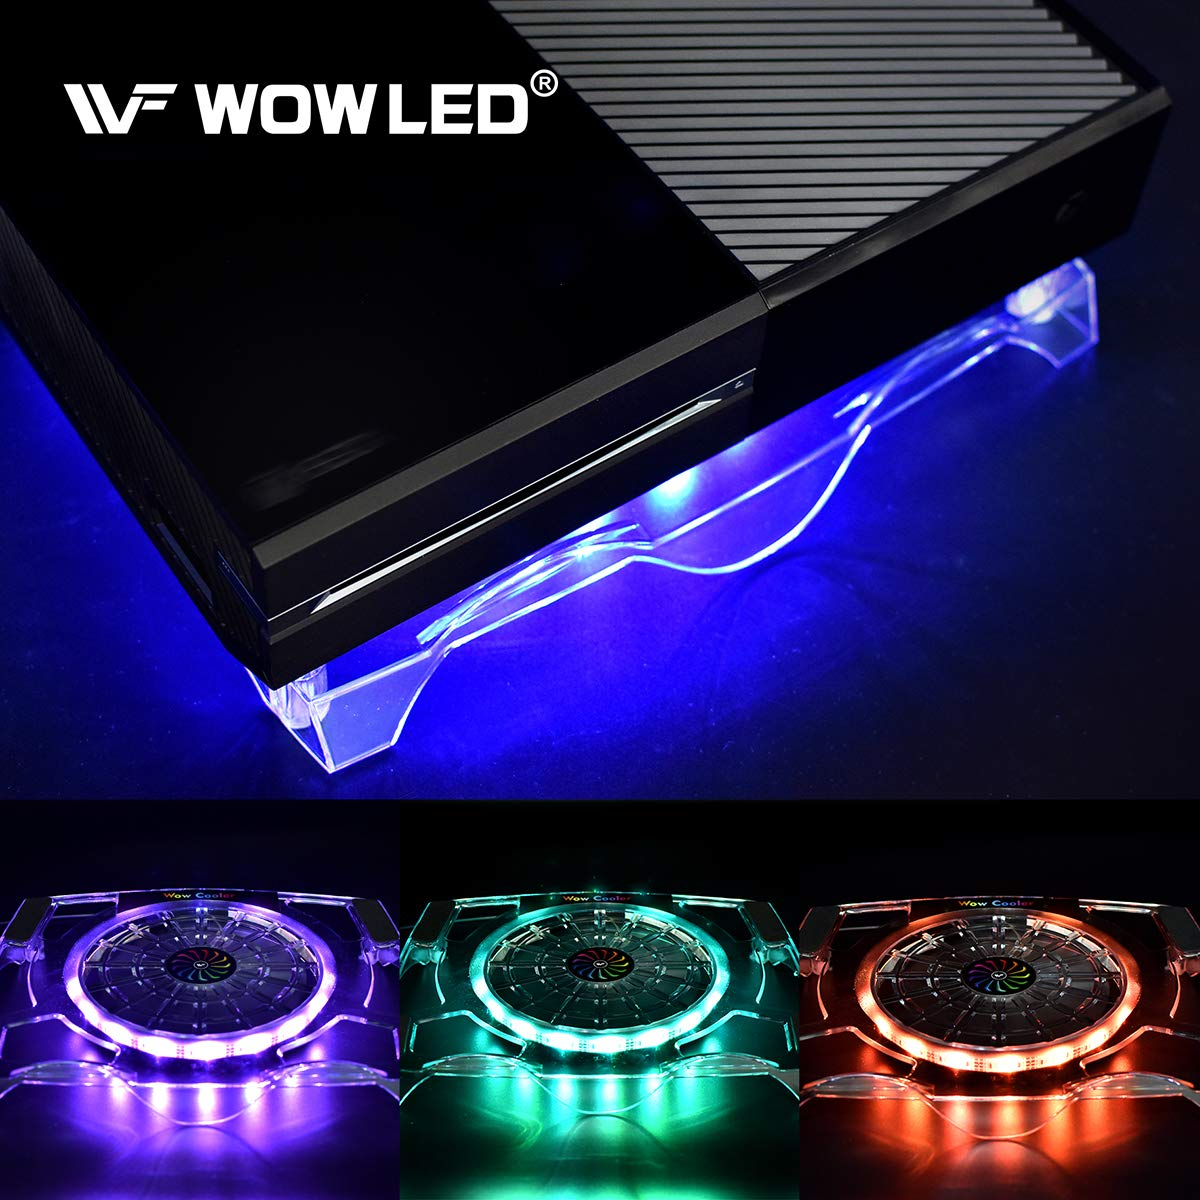 WOWLED Upgrade Sturdy LED Cooling Cooler Fan 3-Key Mini Controller PS4 Accessories Pro Cooling Fan, Xbox One X 360 Playstation 4 Sony Game Console PC, All-in-One USB RGB LED Fan Pad Stand Coolers by WOWLED (Image #1)